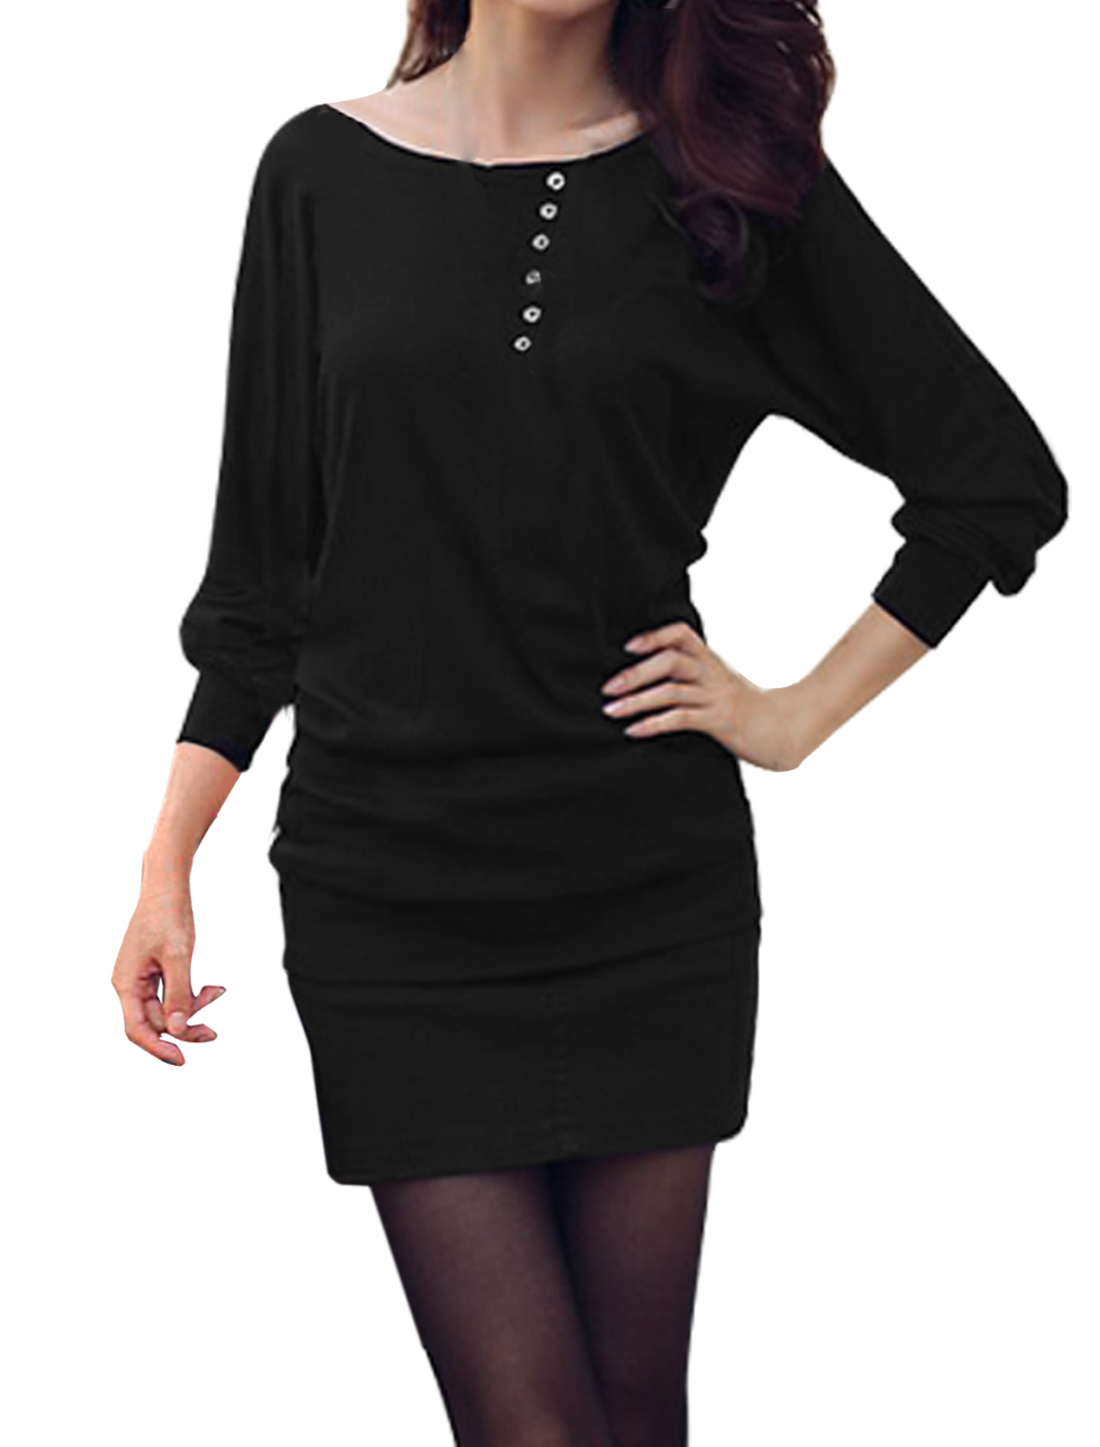 XS Batwing Style Long Sleeve Boat Neck Solid Black Shirt for Women